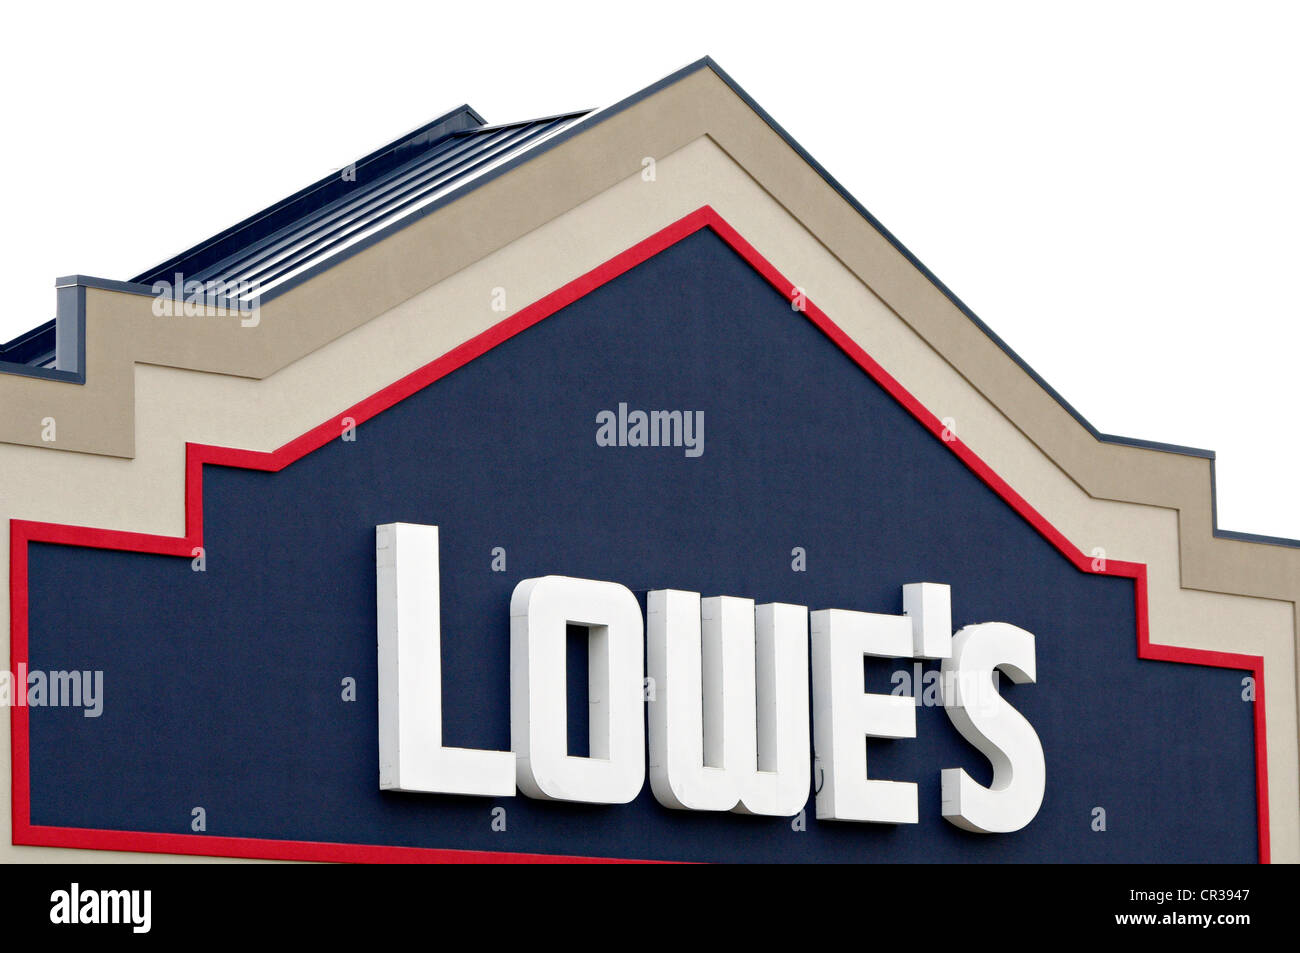 Lowes Home Improvement Store Stock Photos Lowes Home Improvement